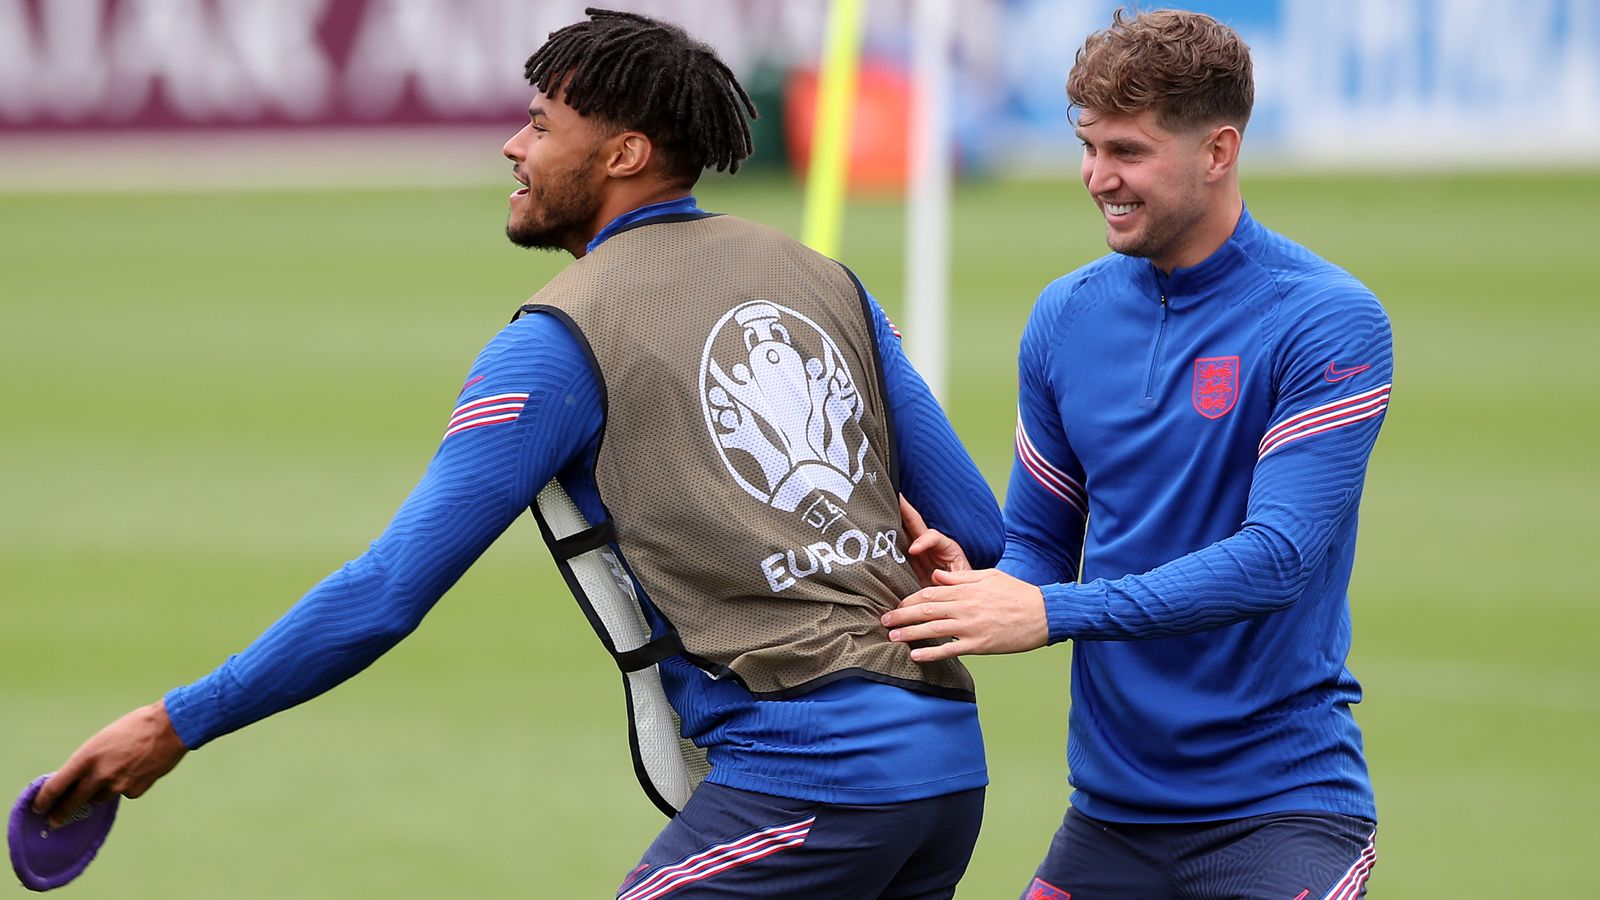 England vs Scotland: Tyrone Mings and John Stones set to start crucial Euro 2020 tie, Harry Maguire on the bench